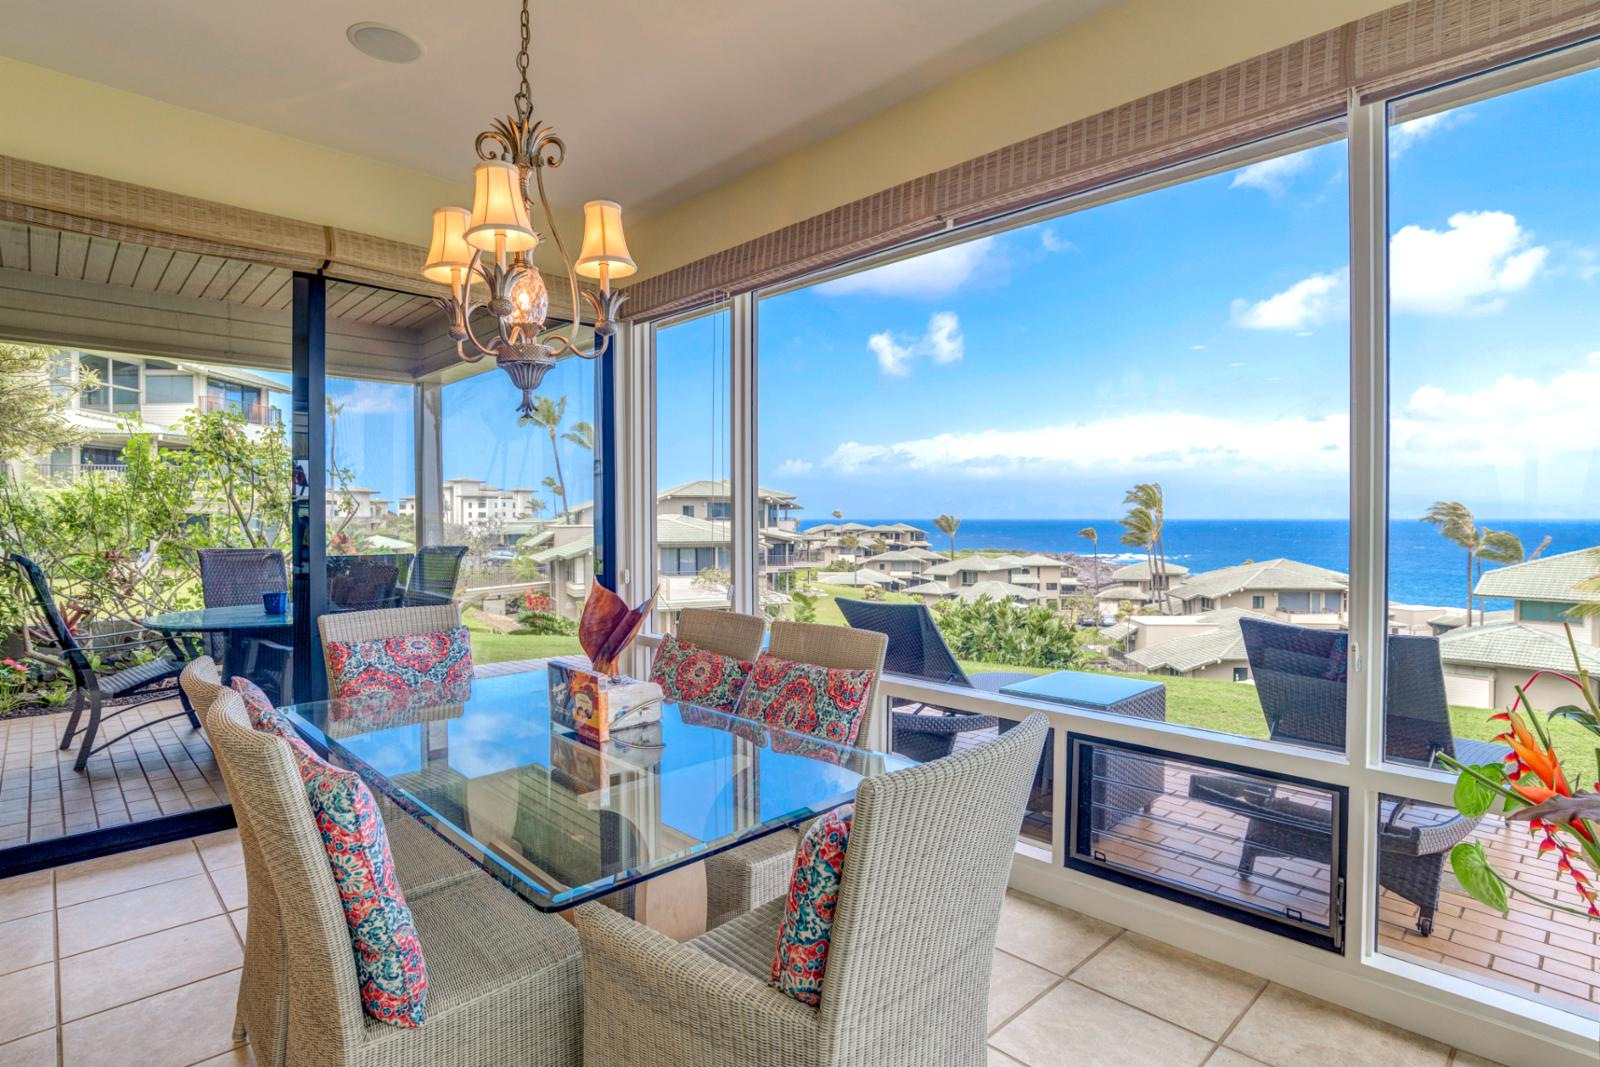 Enjoy ocean views from the formal dining table, seating for (6)